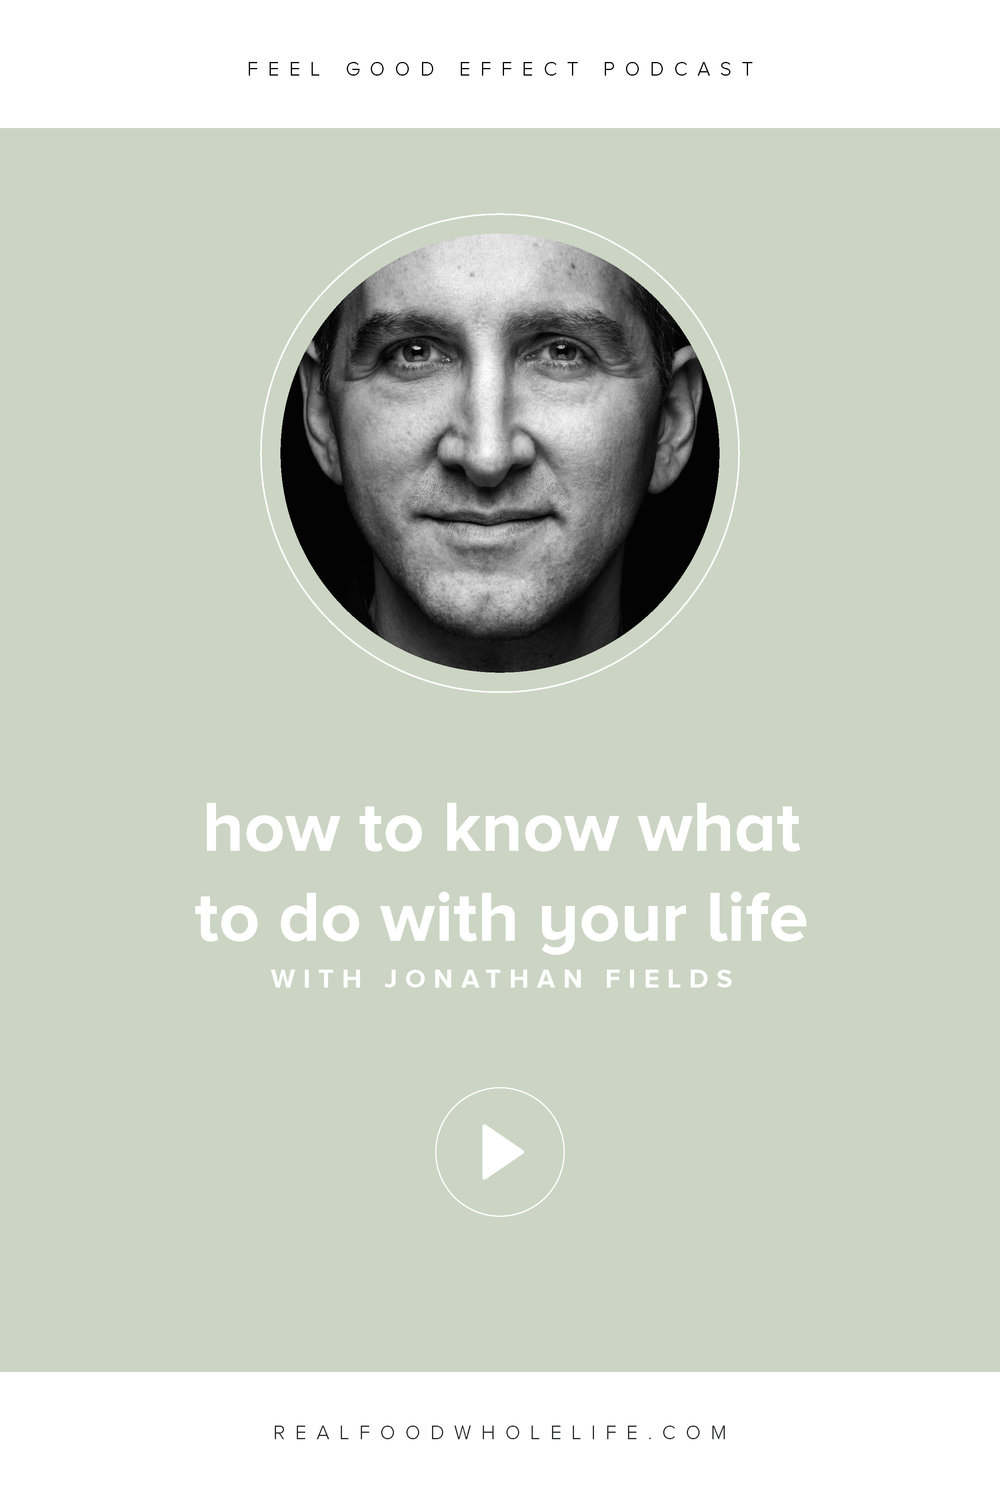 How to know what to do with your life, a conversation with best-selling author Jonathan Fields on the Feel Good Effect podcast. #feelgoodeffect #realfoodwholelife #wellnesspodcast #healthy #podcast #purpose #gentleisthenewperfect